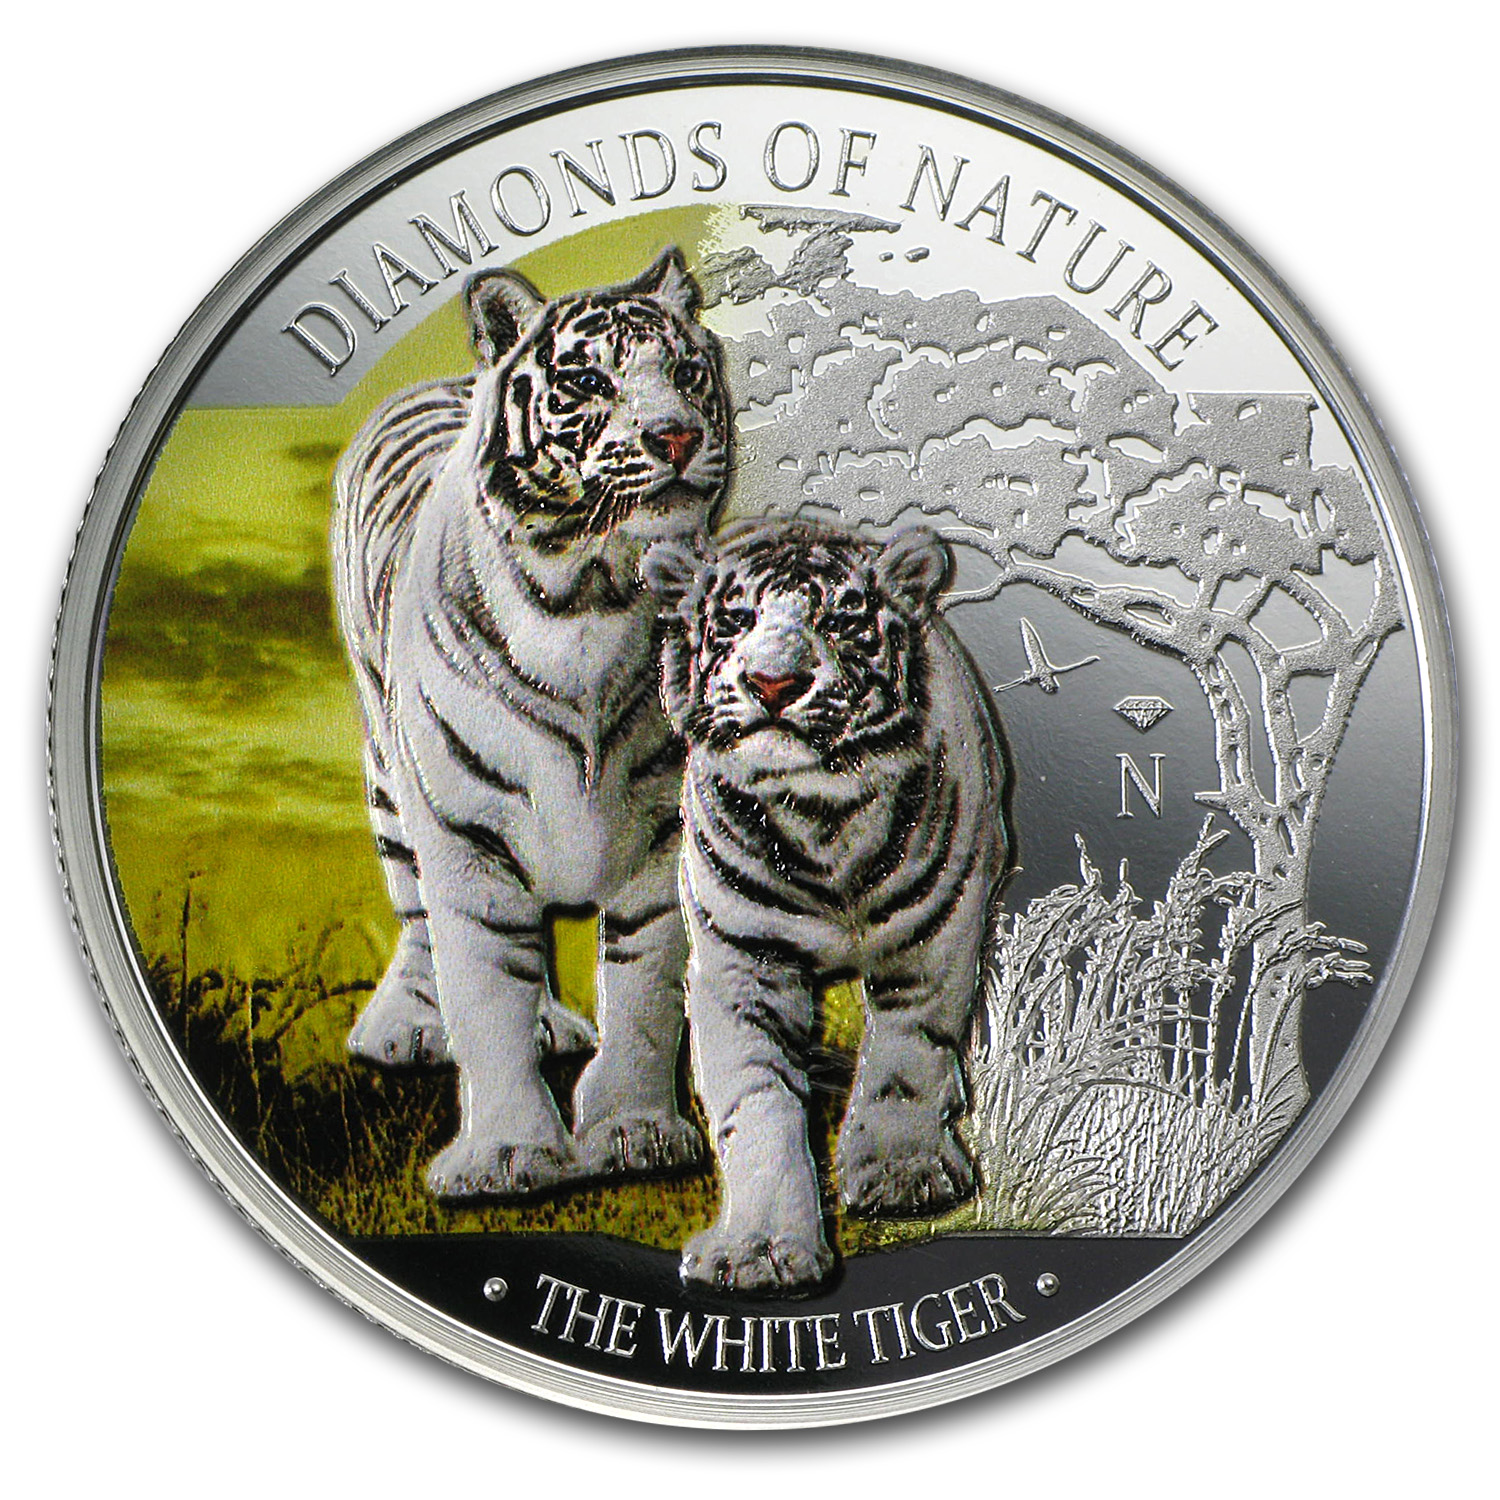 2012 Fiji Silver $10 Diamonds of Nature White Tiger